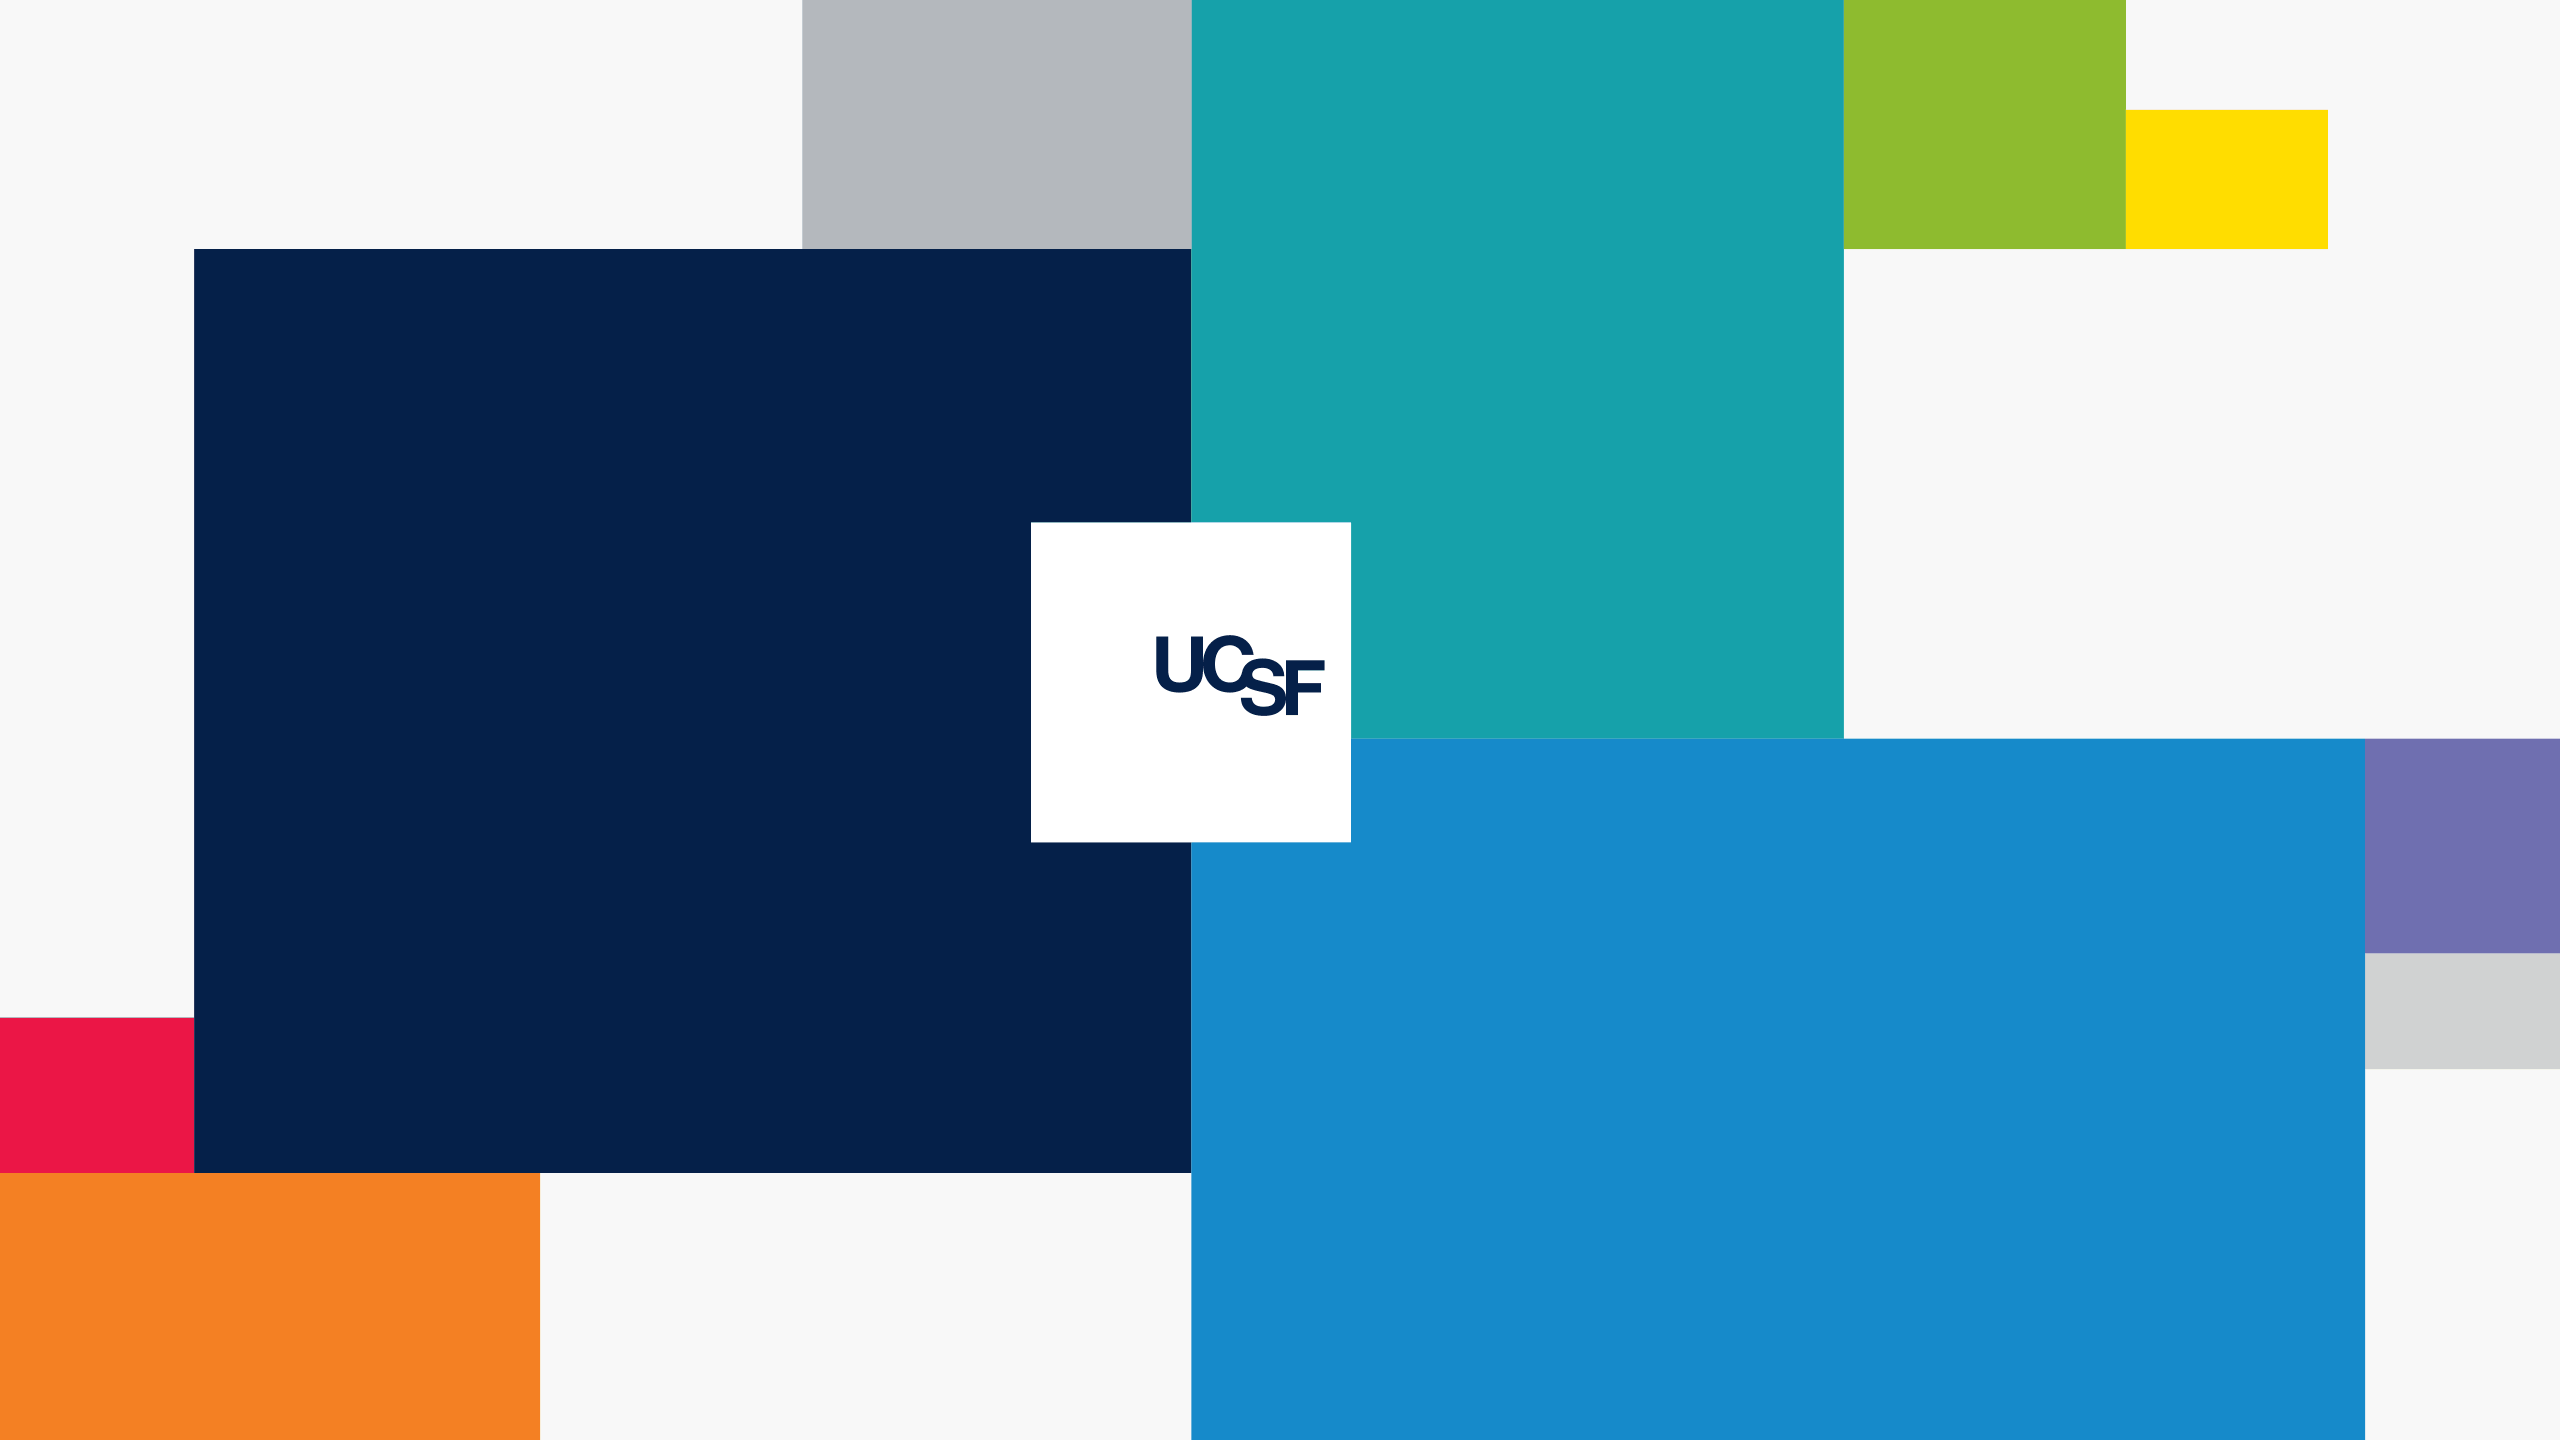 UCSF Brand Color Palette